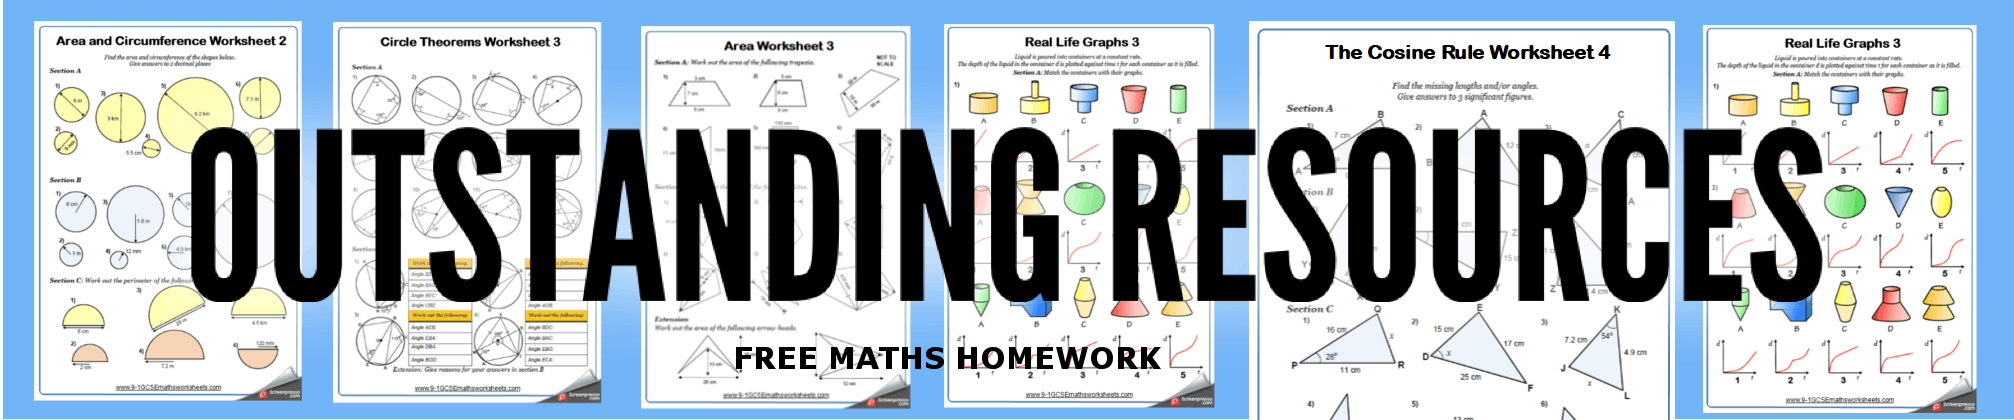 free maths homework